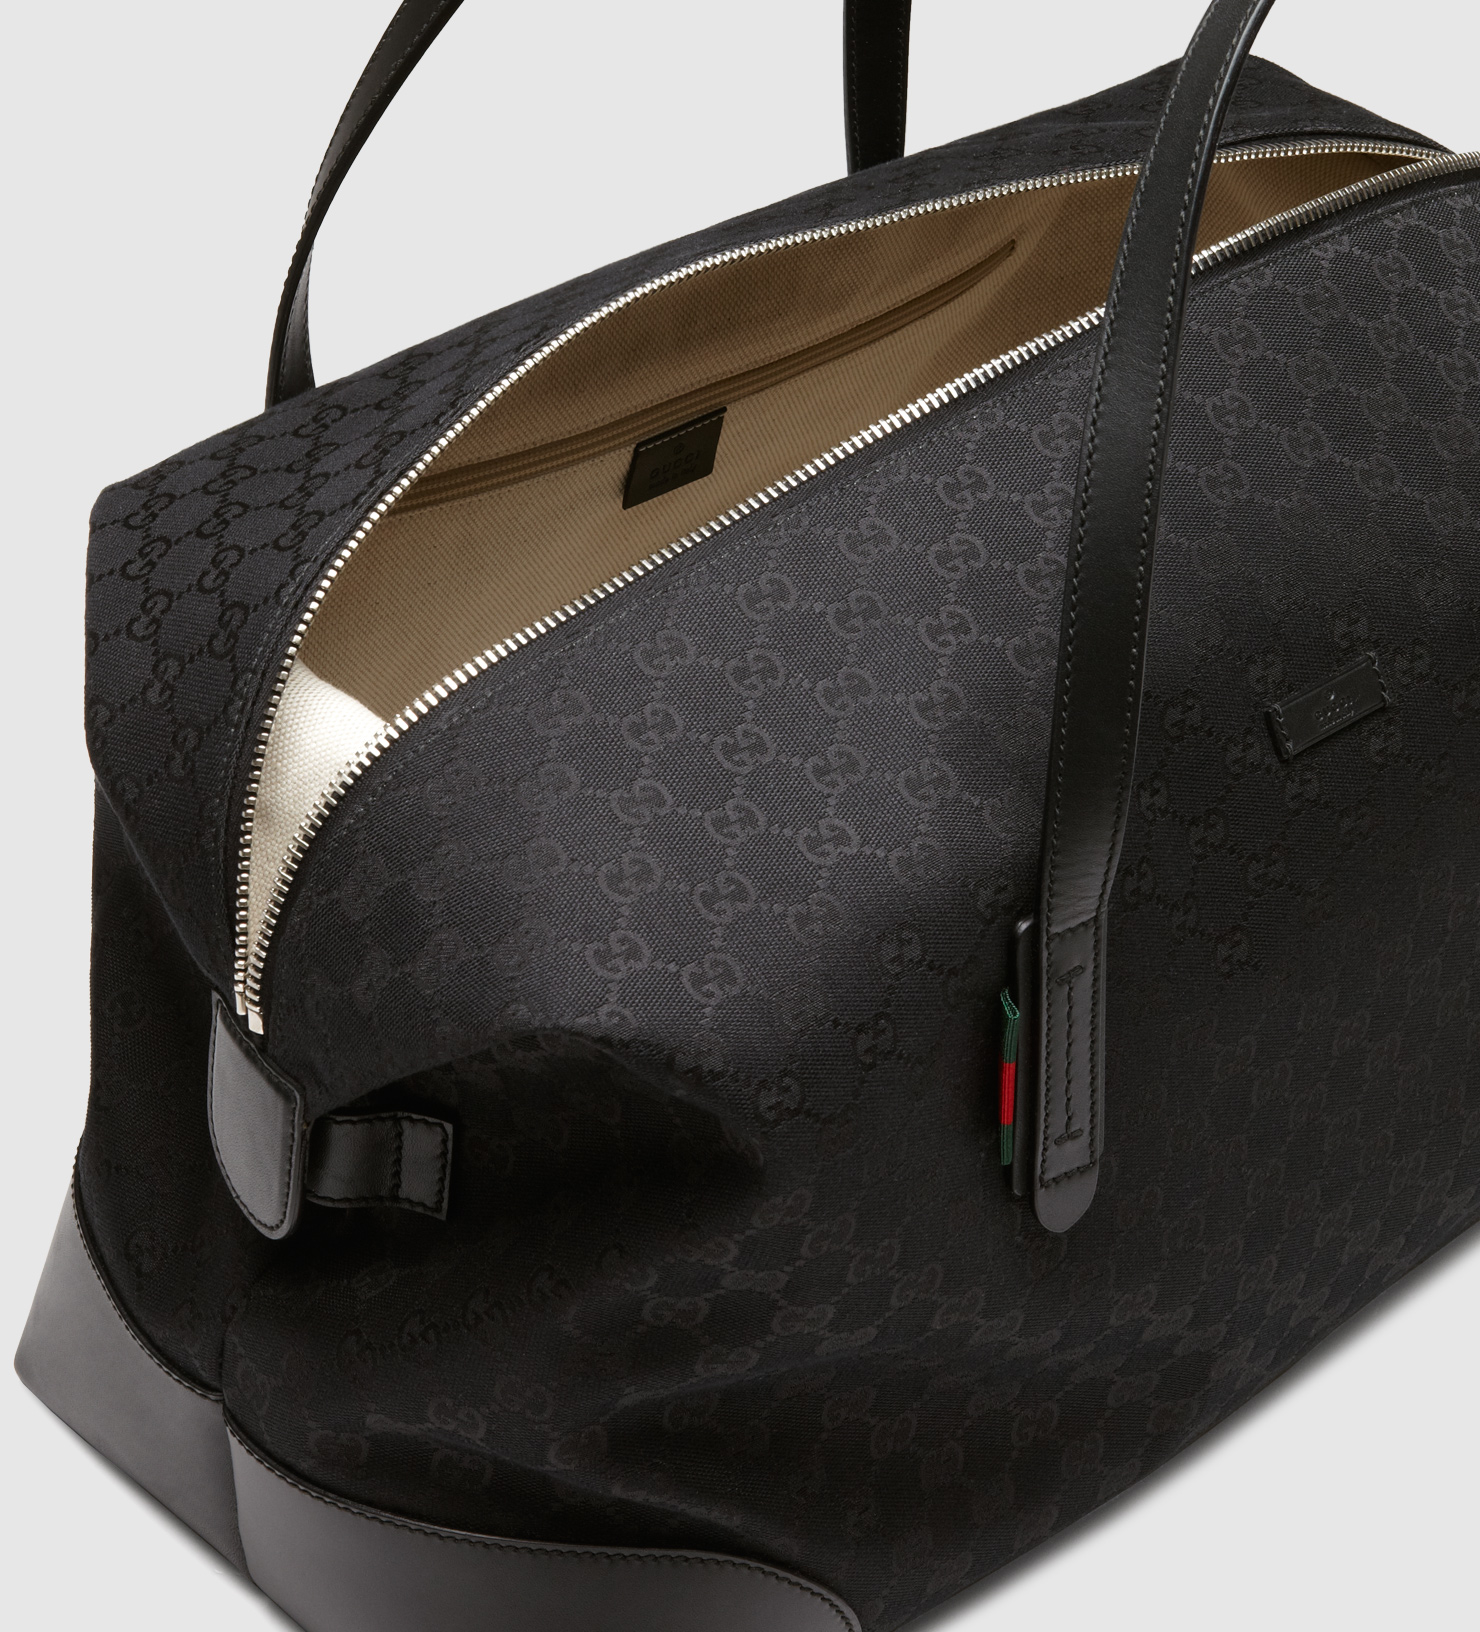 Lyst - Gucci Original Gg Canvas Carry-on Duffle Bag in Black for Men 123fd852fef14